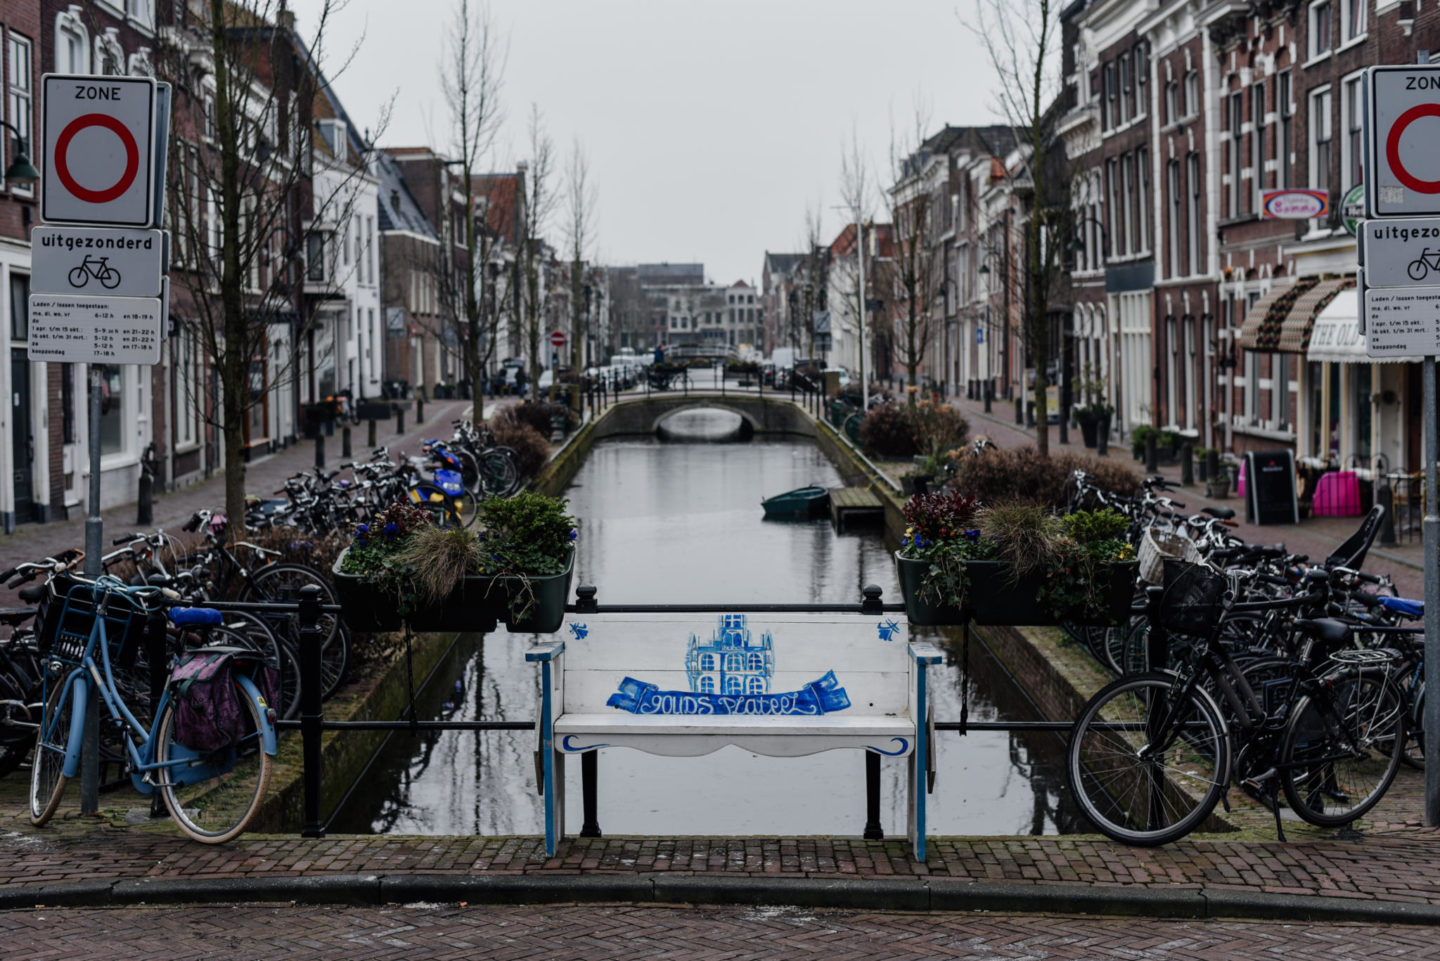 Water Canals in Gouda The Netherlands